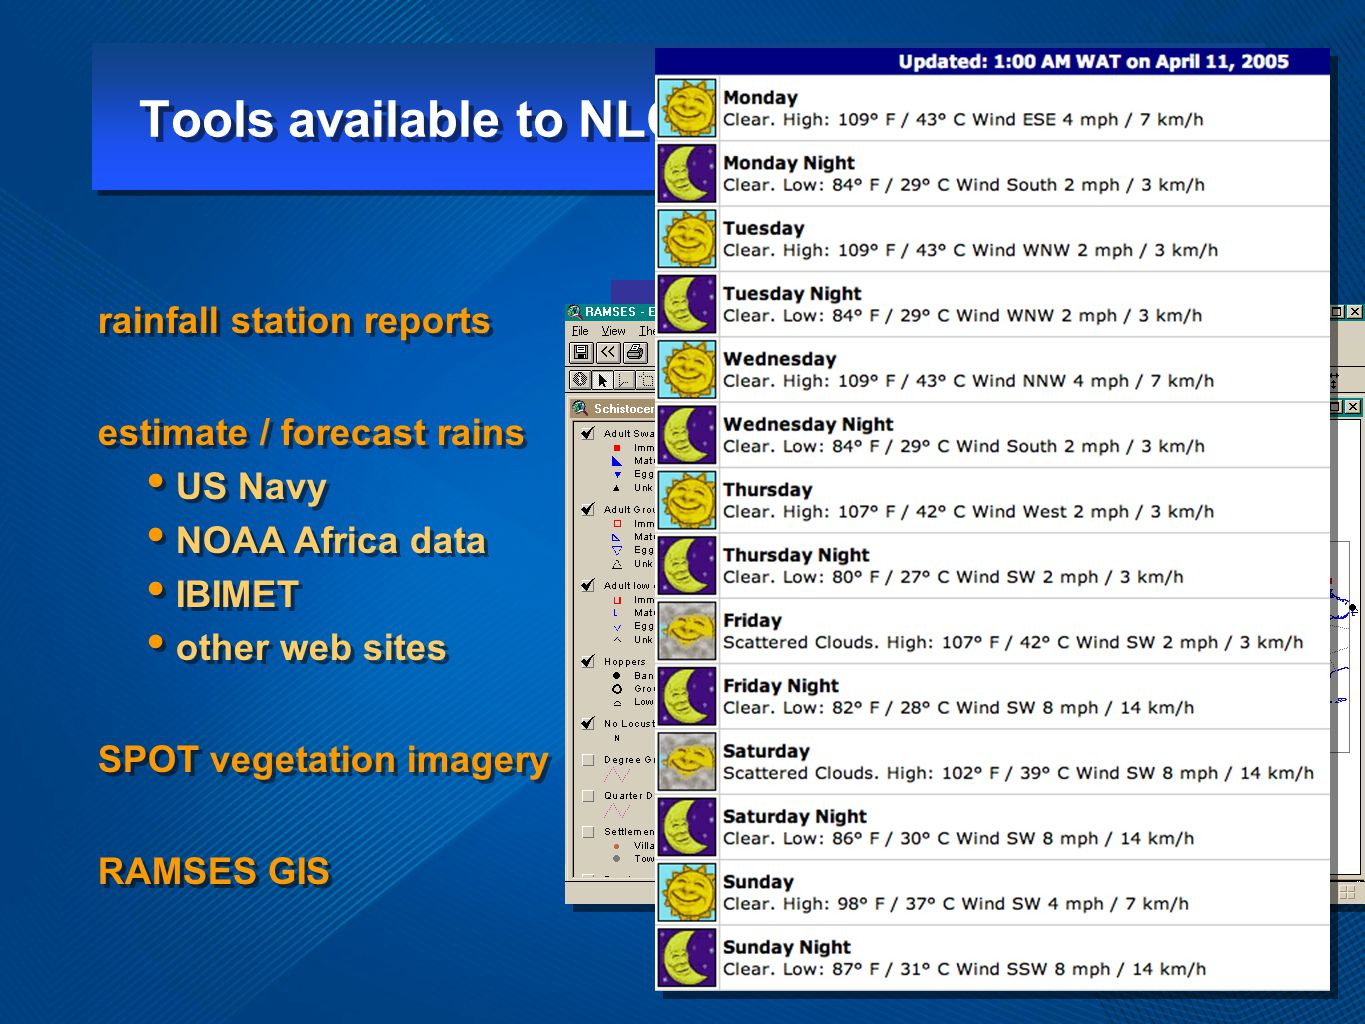 Tools available to NLCCs 11 / 14 rainfall station reports estimate / forecast rains US Navy NOAA Africa data IBIMET other web sites SPOT vegetation imagery RAMSES GIS rainfall station reports estimate / forecast rains US Navy NOAA Africa data IBIMET other web sites SPOT vegetation imagery RAMSES GIS